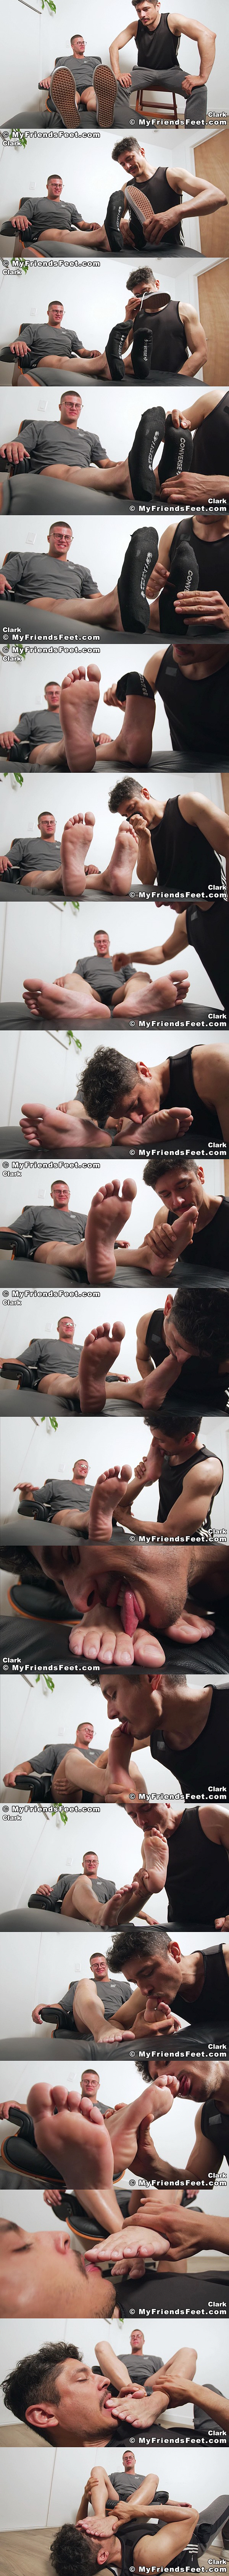 Myfriendsfeet - porn star Rocky Vallarta worships straight muscle hunk, young bodybuilder Clark's sports socks and manly bare feet until Clark is in ecstasy 02